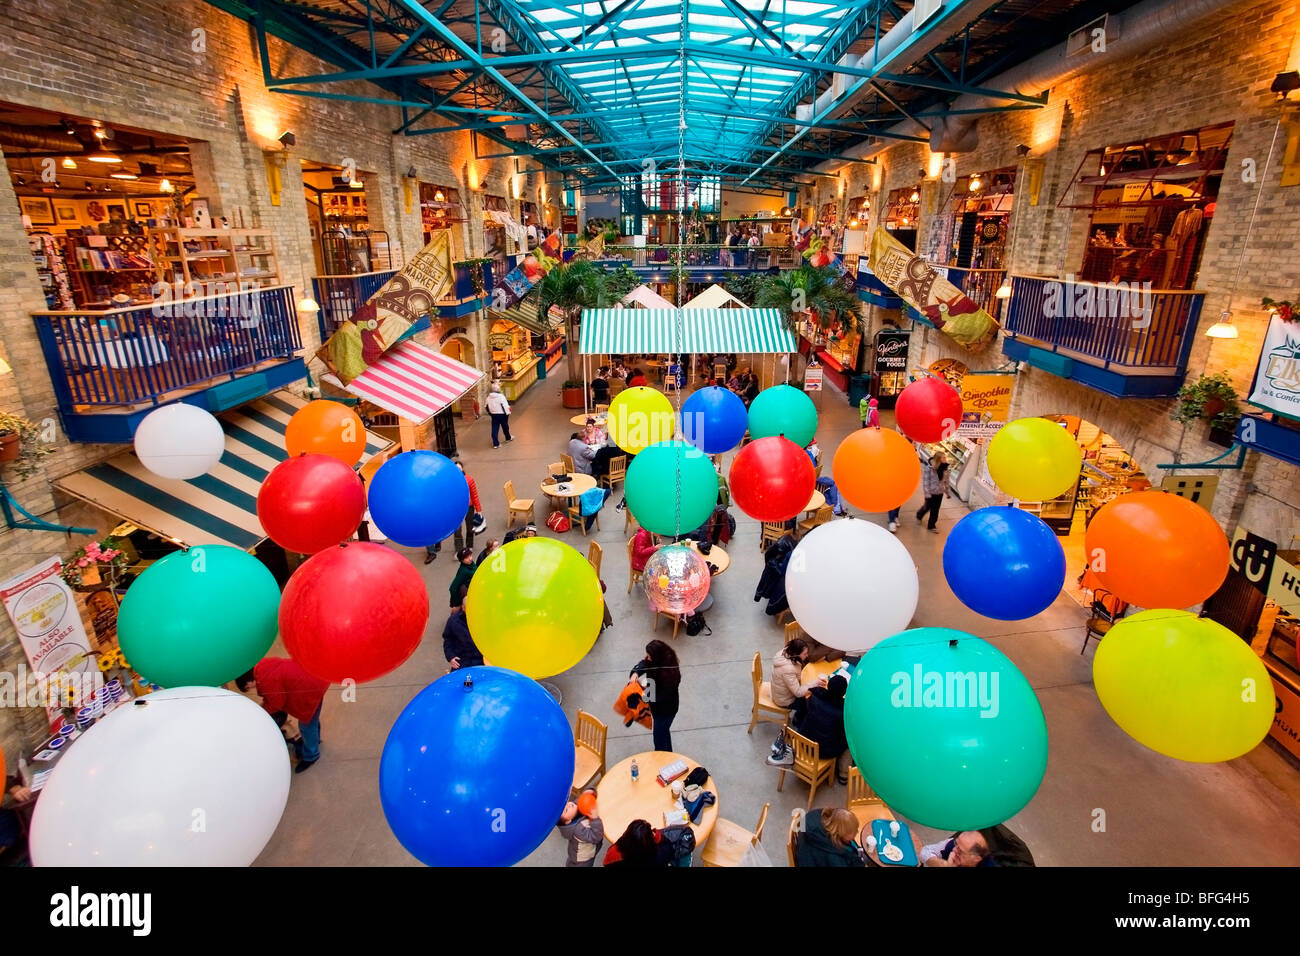 Inside The Forks Market, in downtown Winnipeg, Manitoba, Canada. - Stock Image